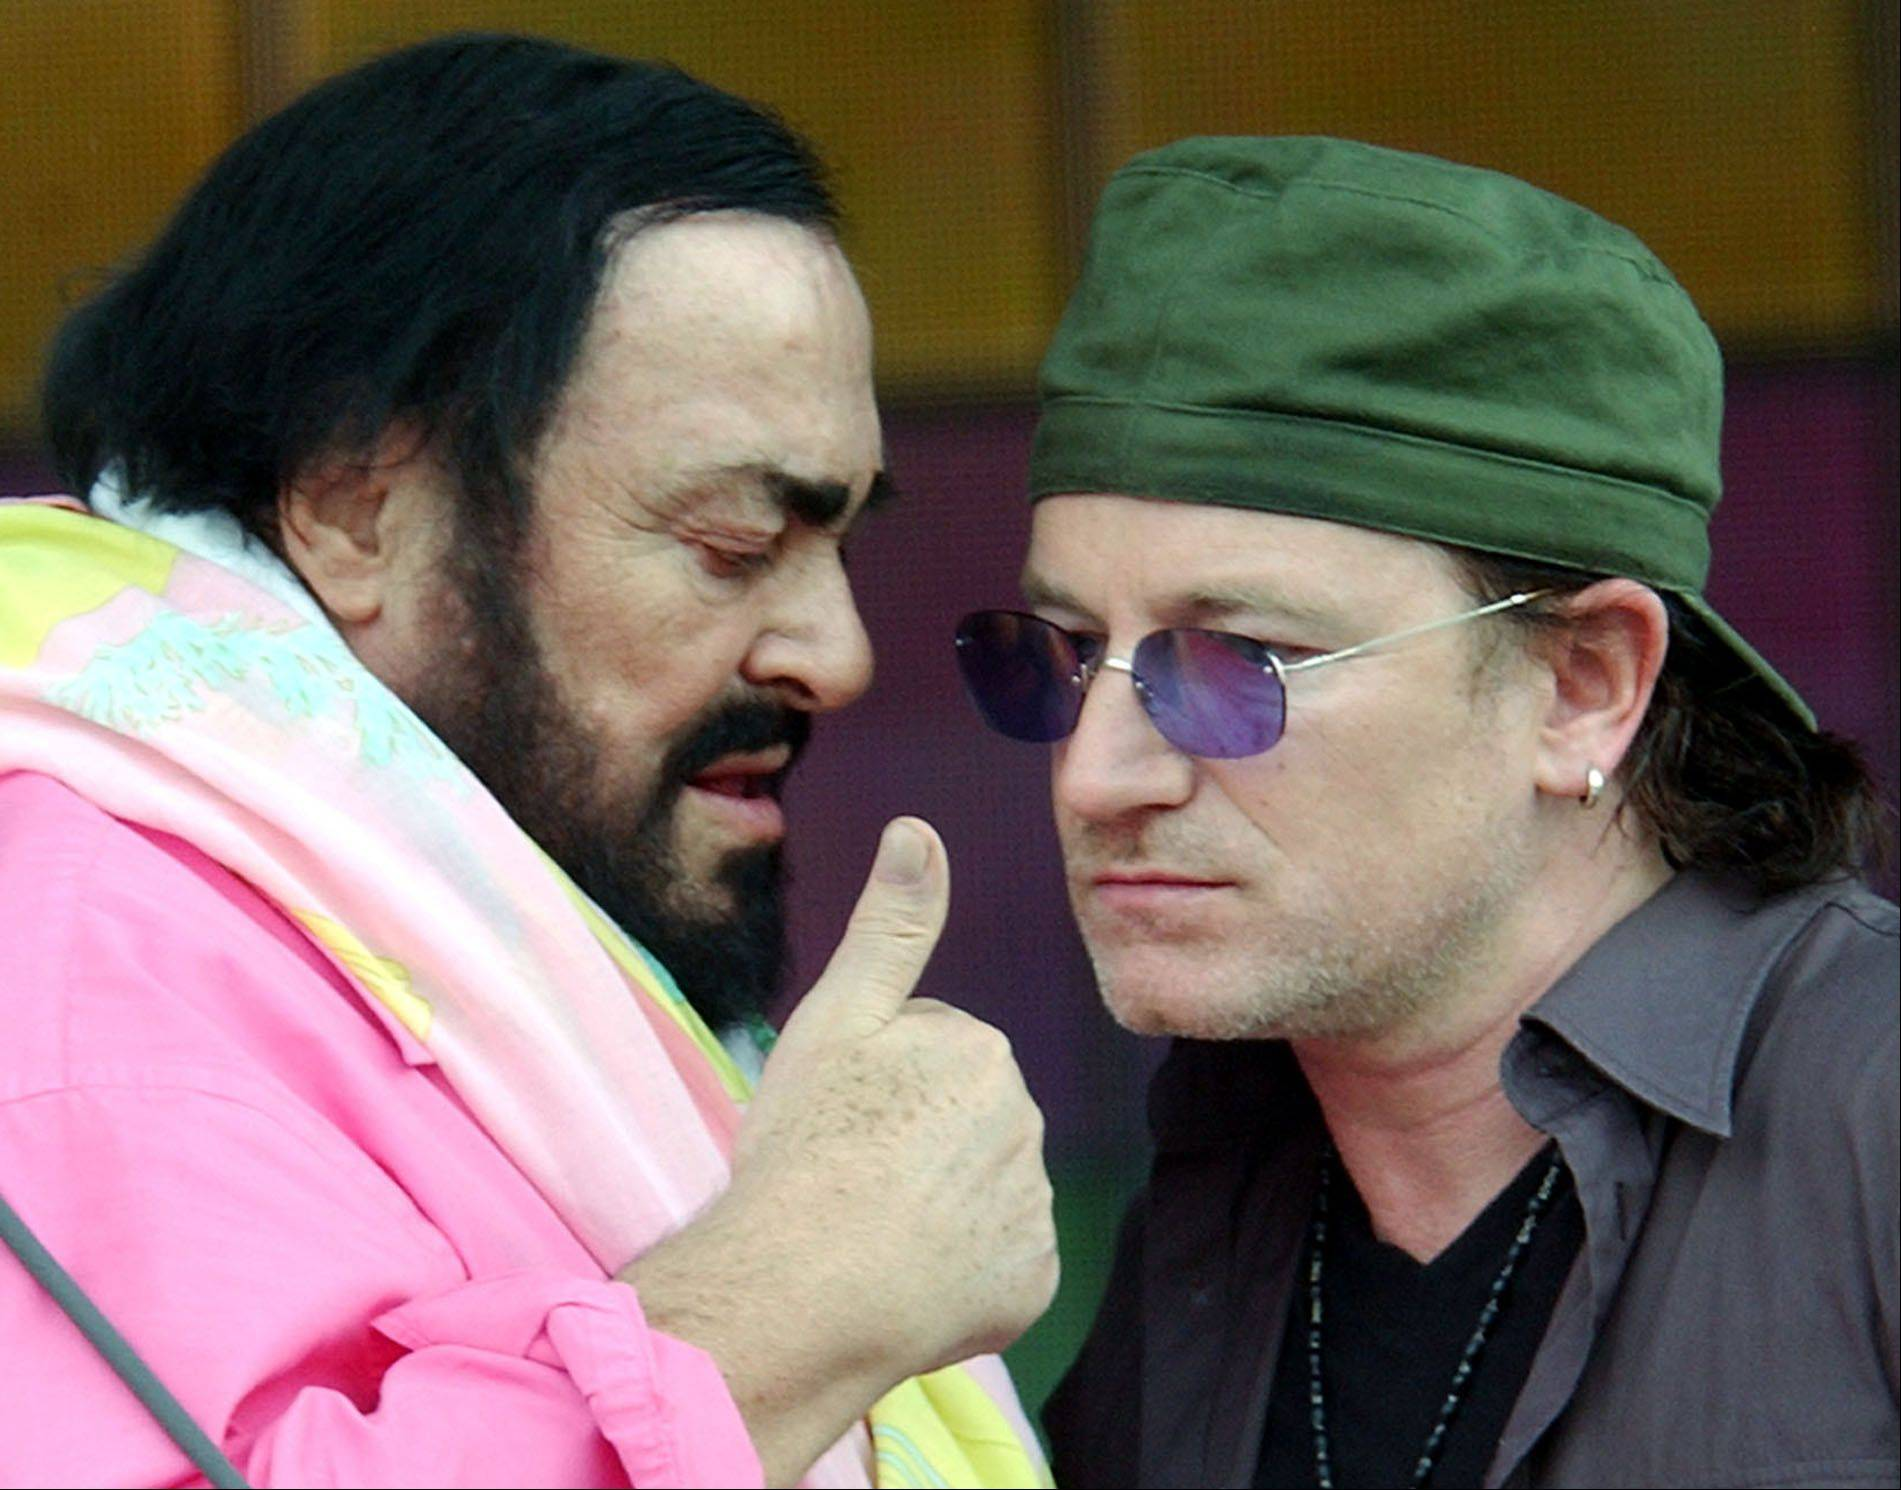 Singer Bono, right, speaks with Italian tenor Luciano Pavarotti during rehearsal for the Pavarotti & Friends 2003 annual charity concert at the Novi Sad Park in Modena, Italy, Monday, May 26, 2003.